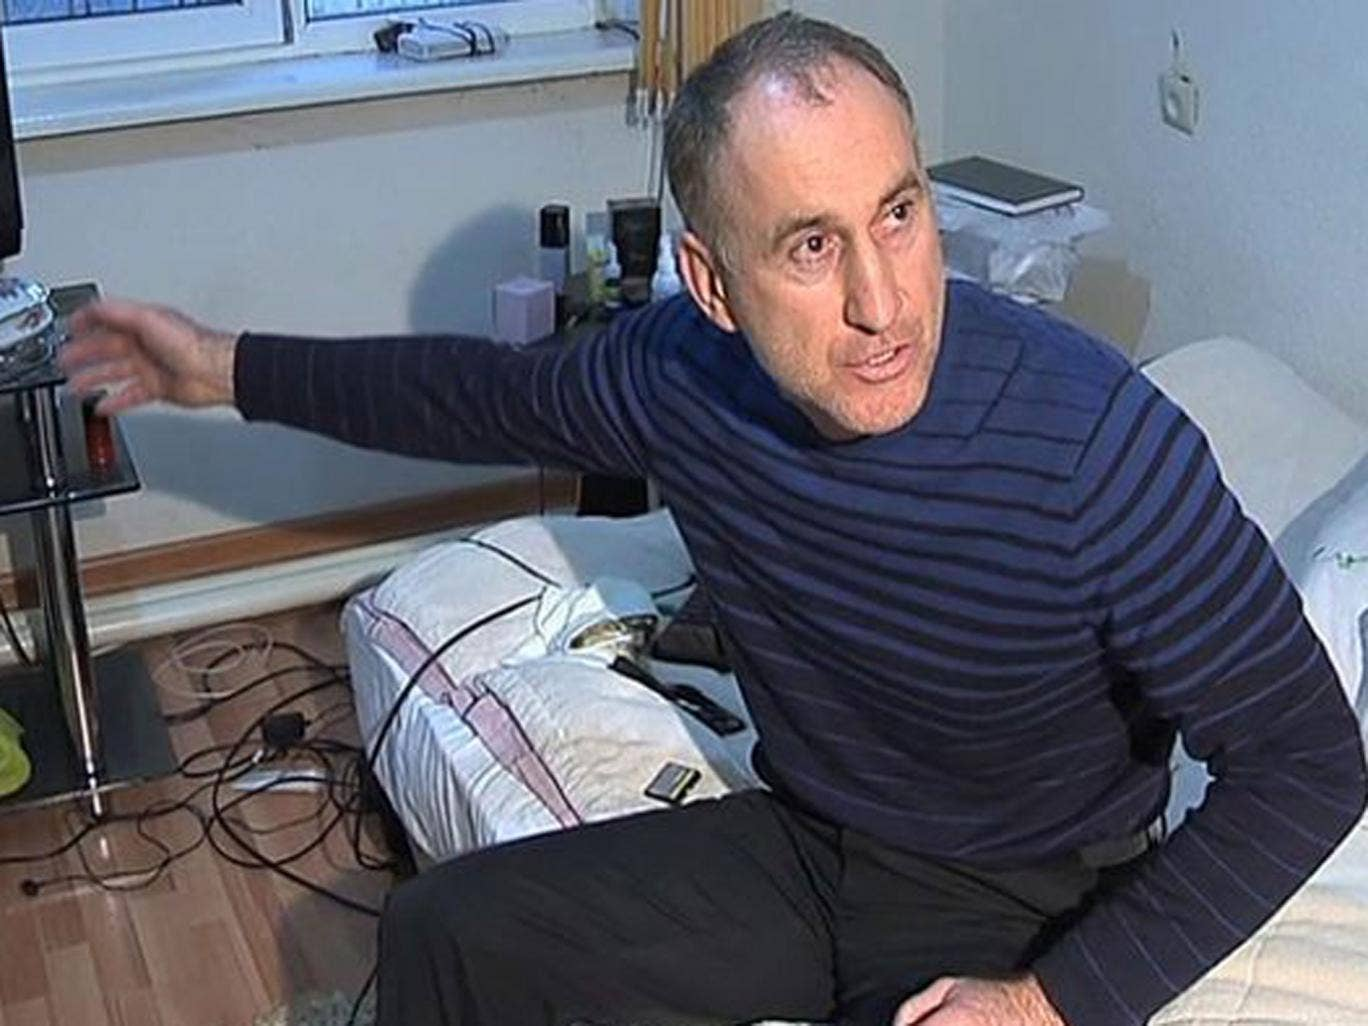 Anzor Tsarnaev, father of the suspected Boston Marathon bombers, insists his boys have been set up